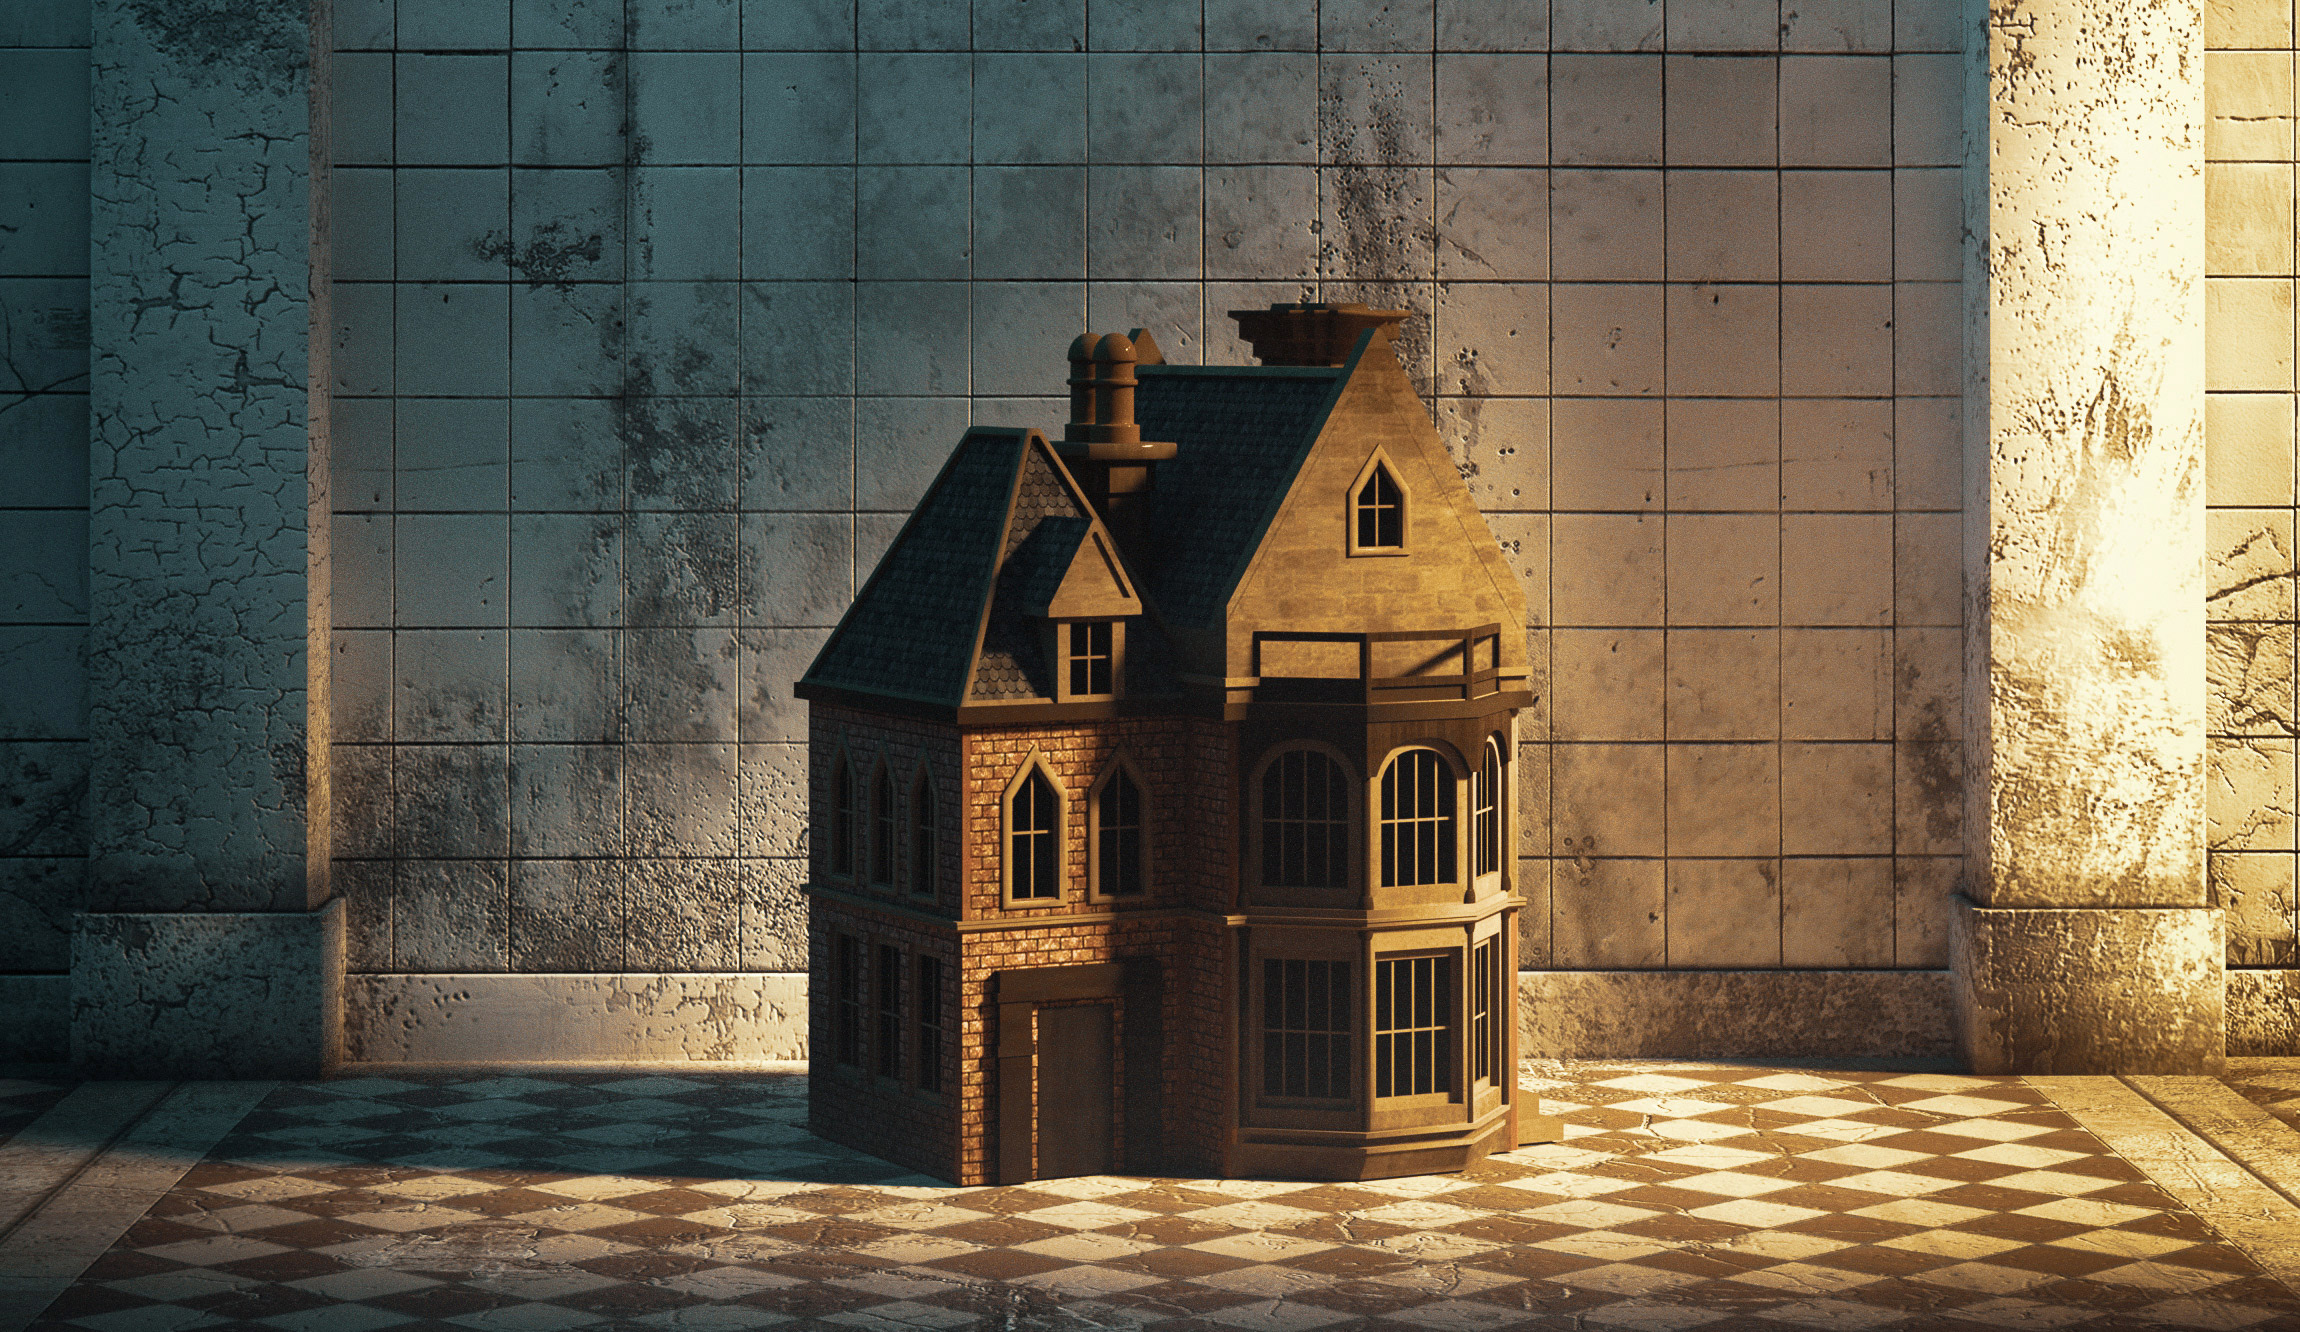 5 Haunted House Stories to Read Right Now